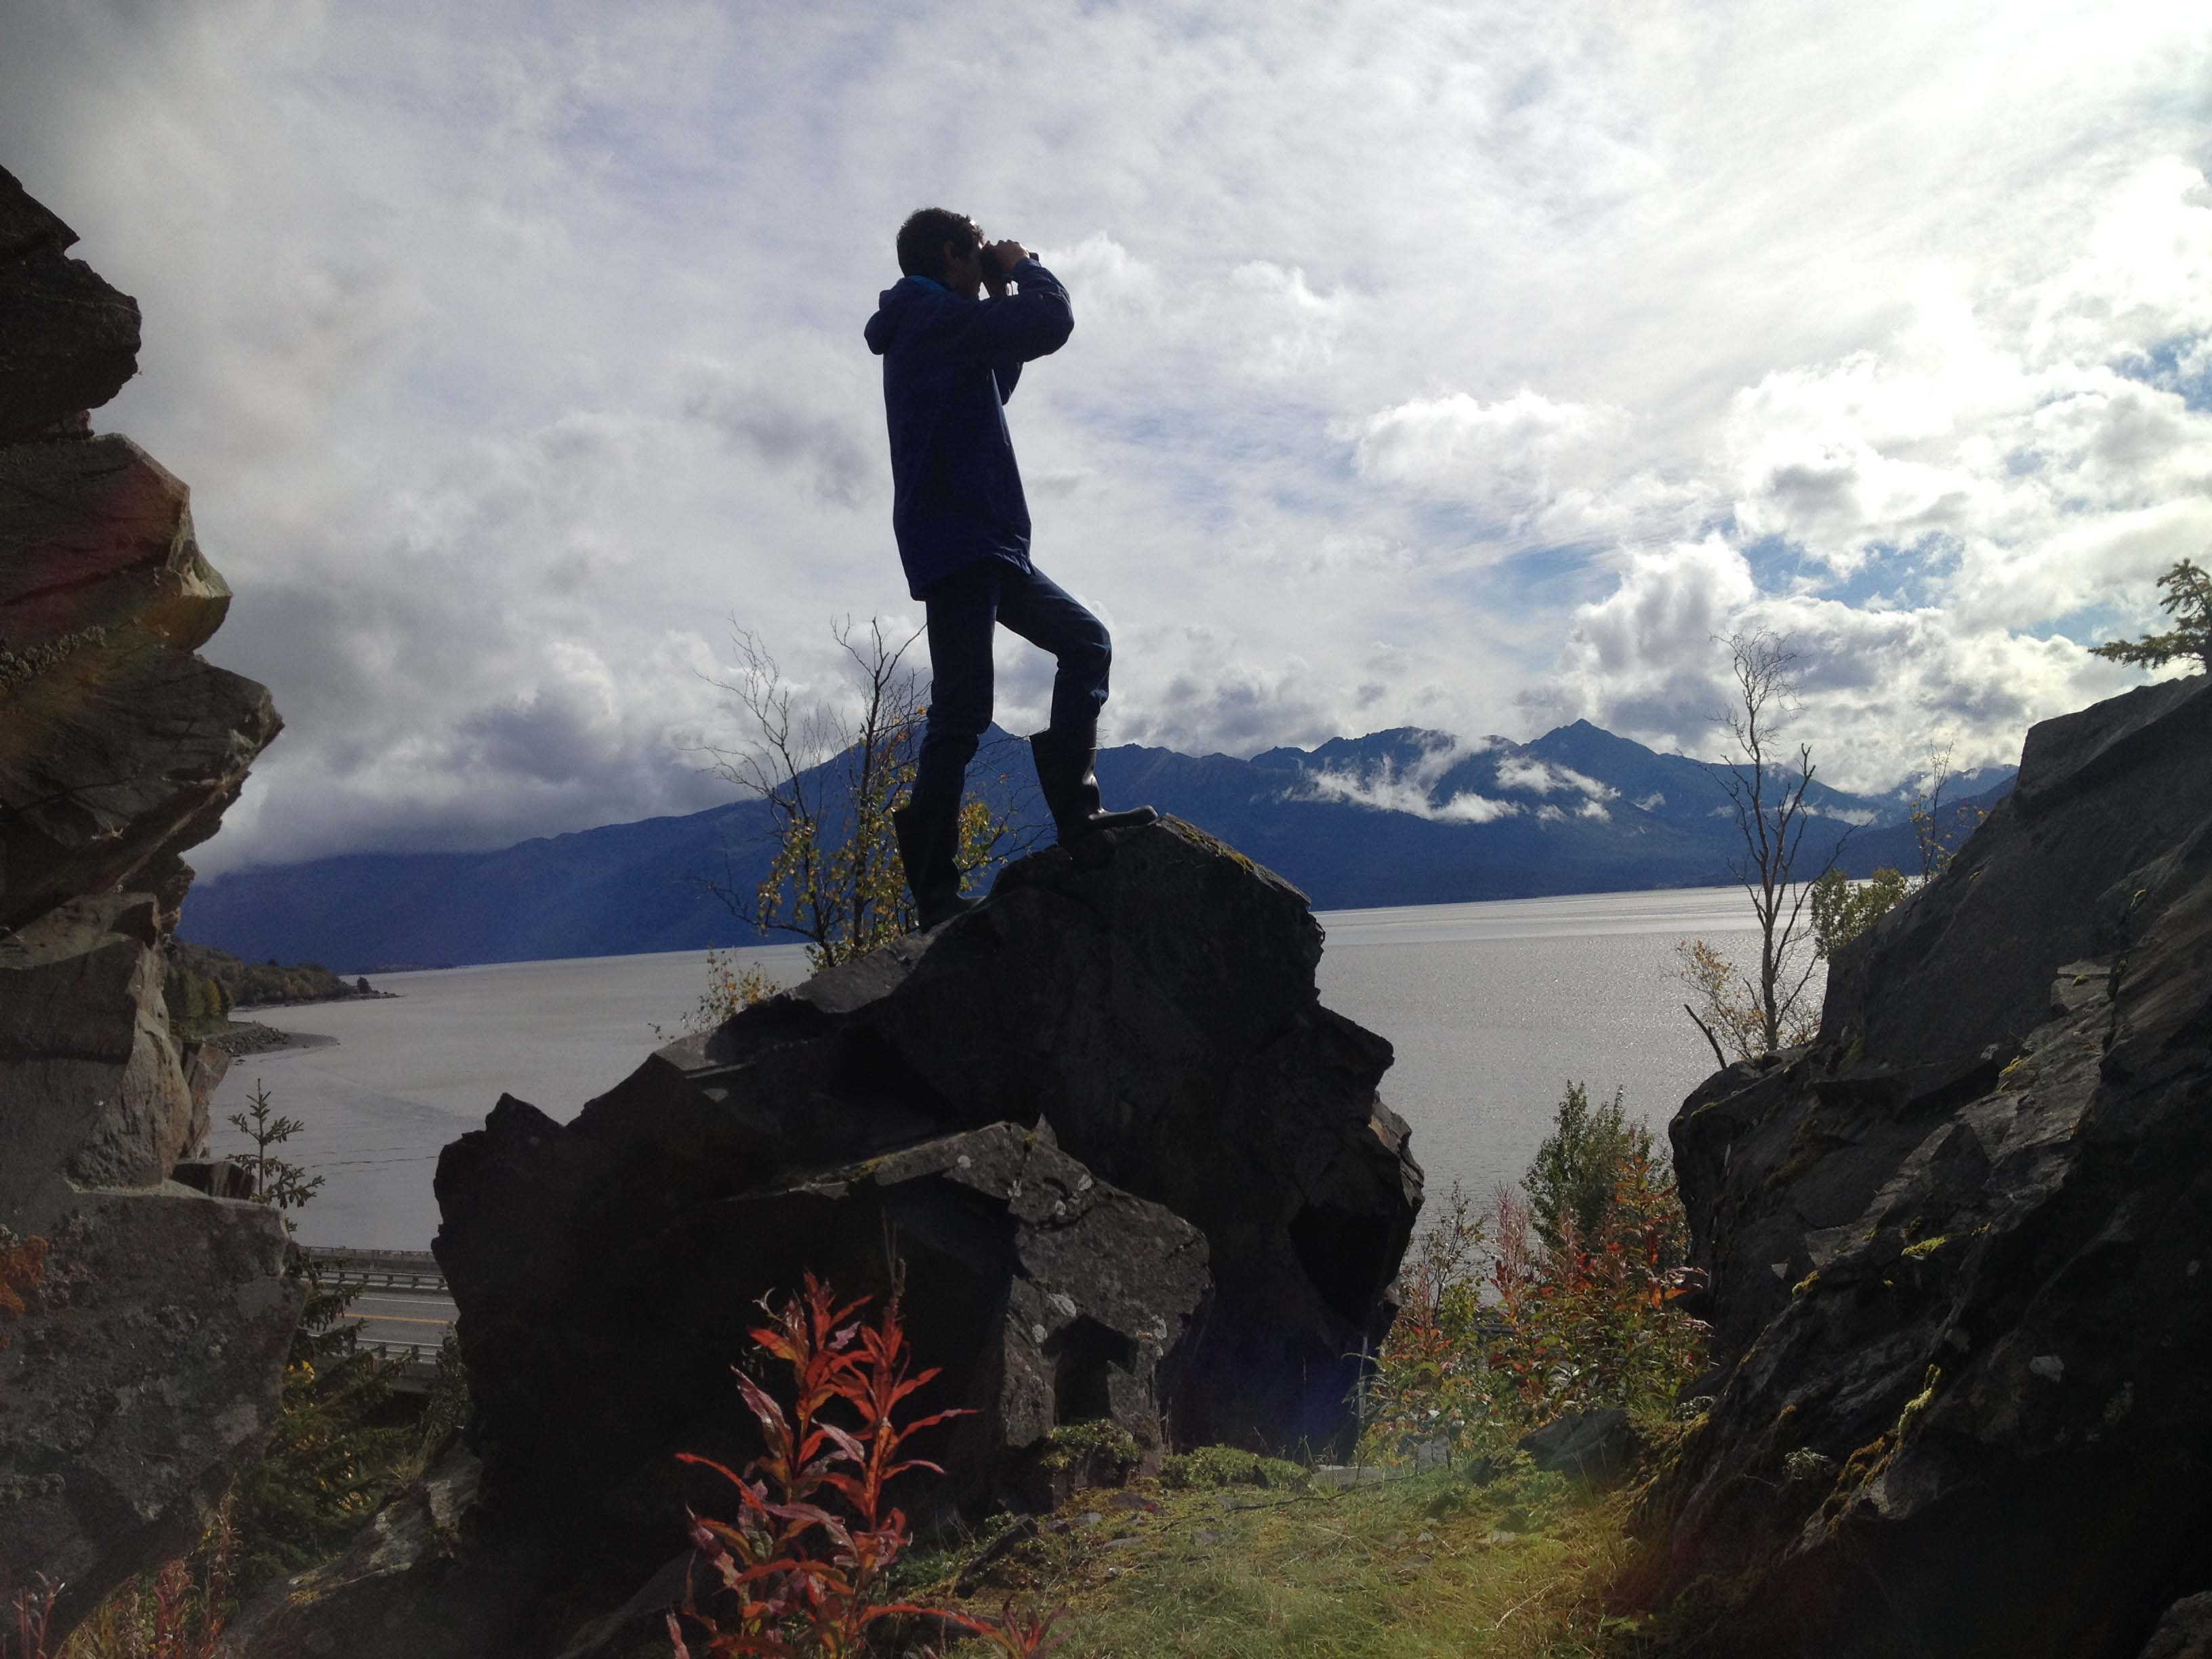 Student with binoculars gazes over cook inlet